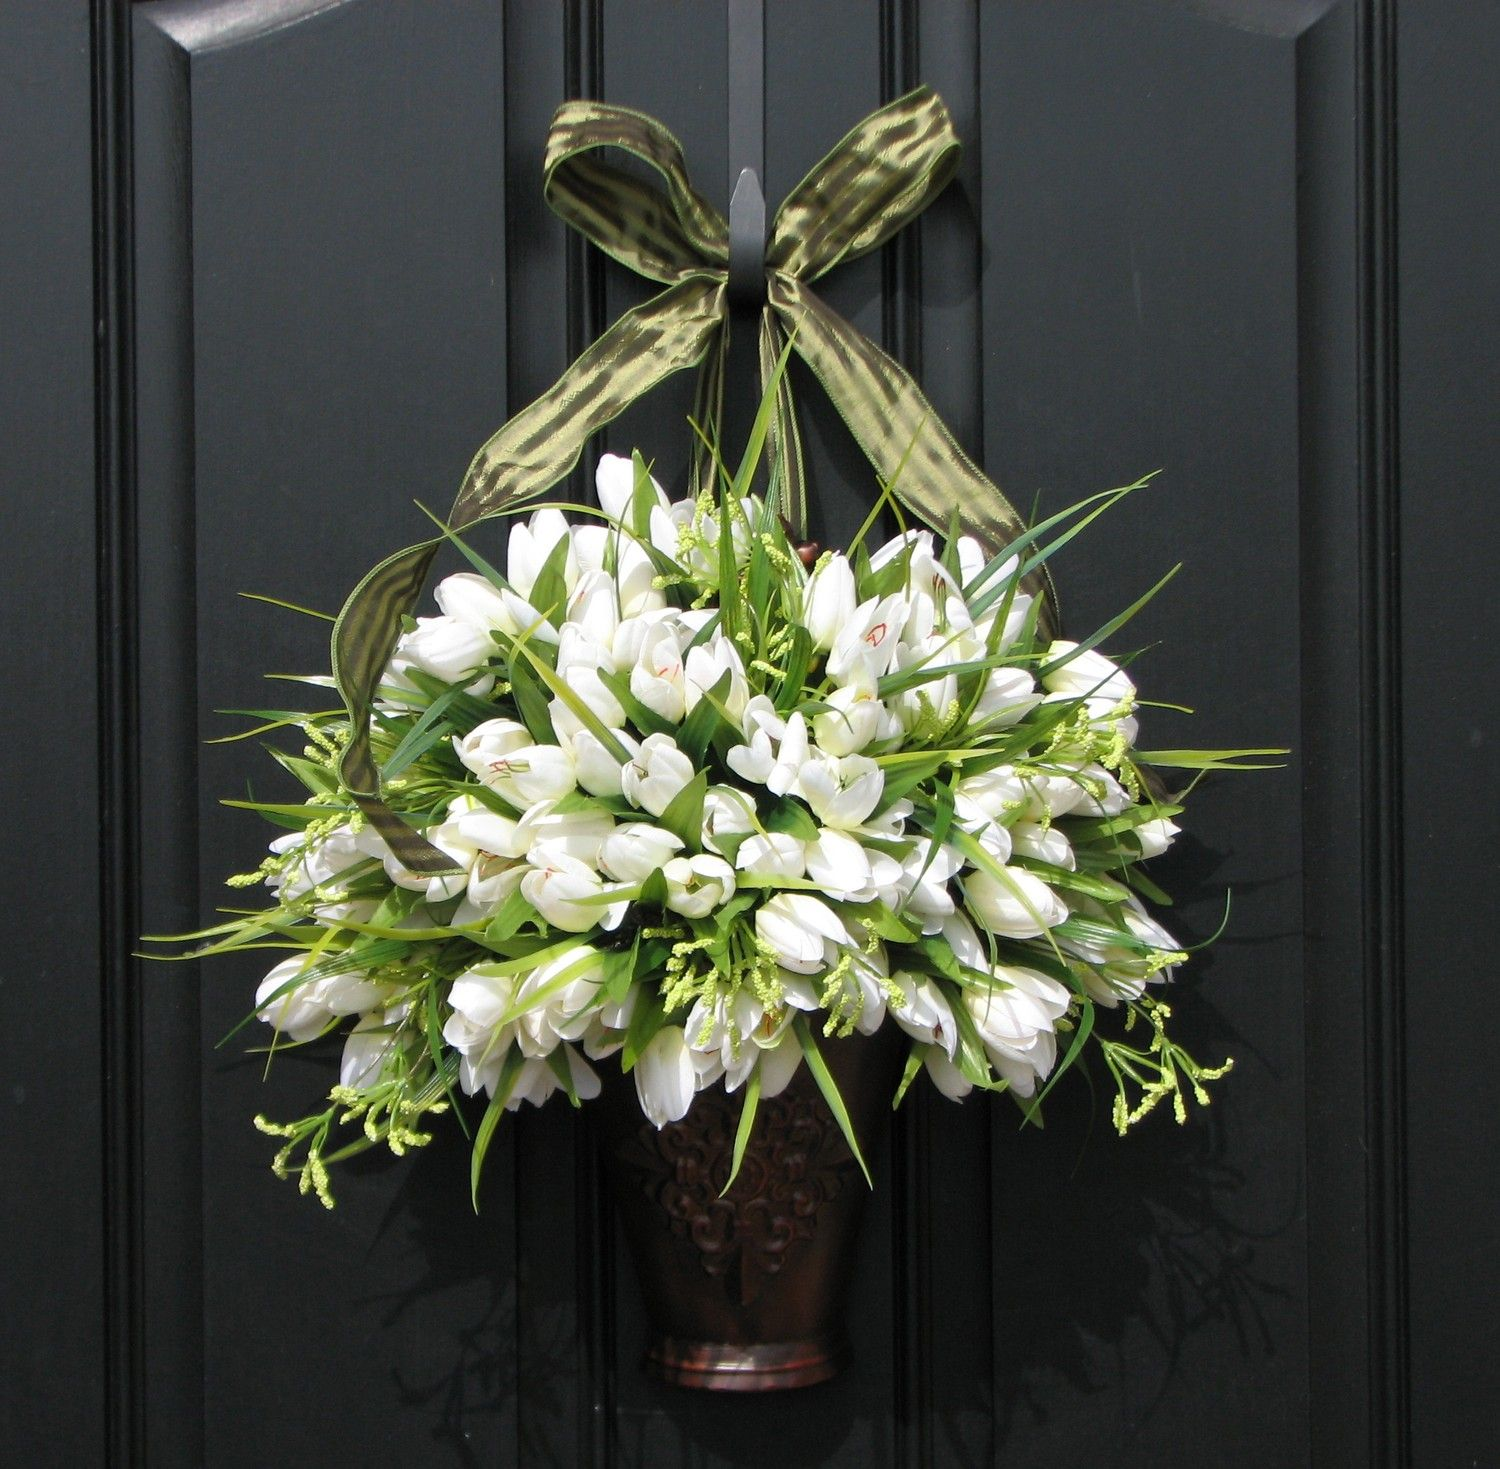 Front door decorations for spring spring tulips Spring flower arrangements for front door